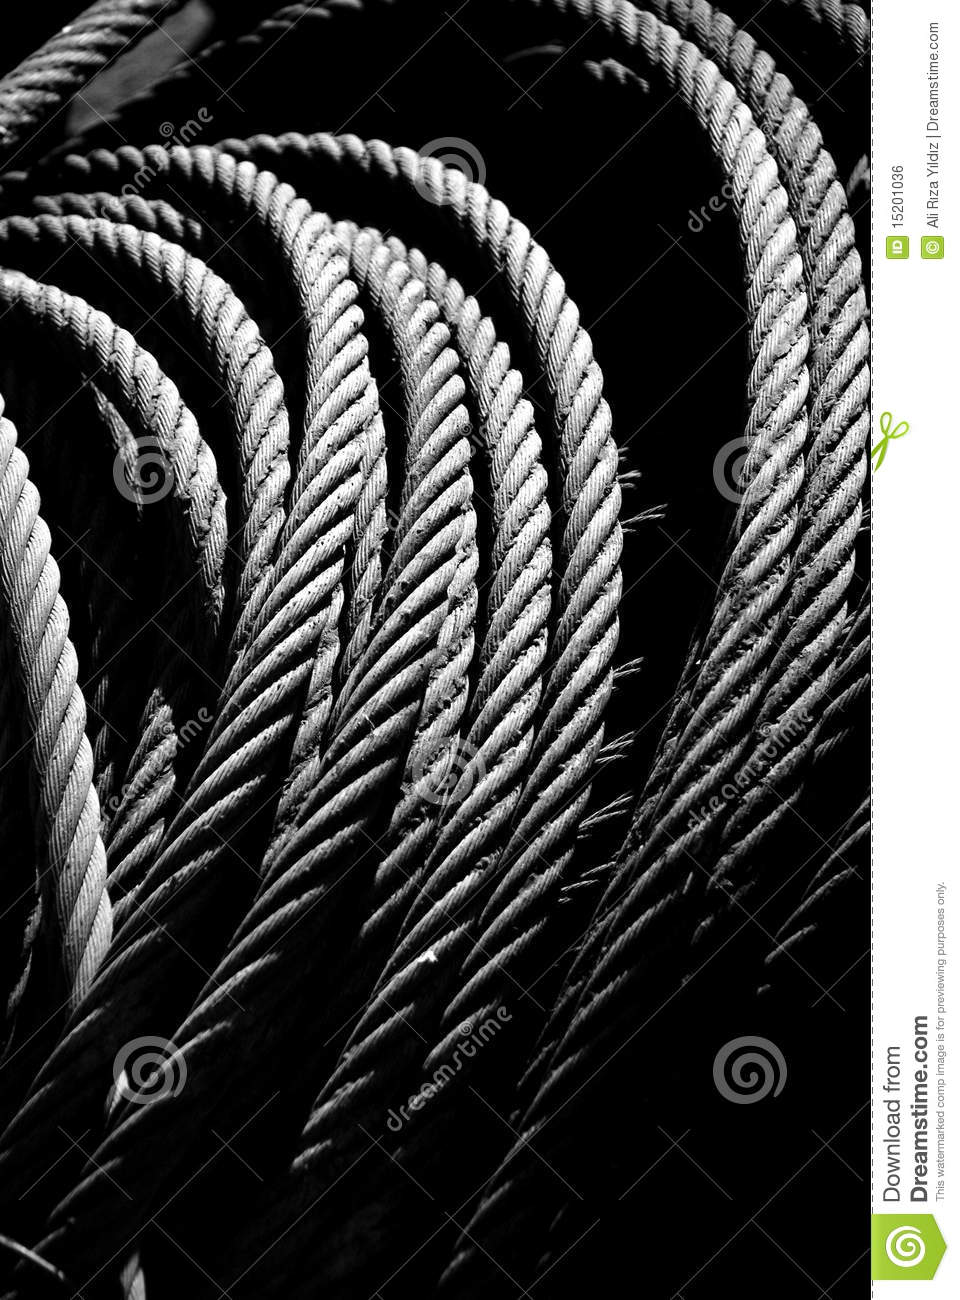 Strong Wire Rope stock photo. Image of material, pile - 15201036